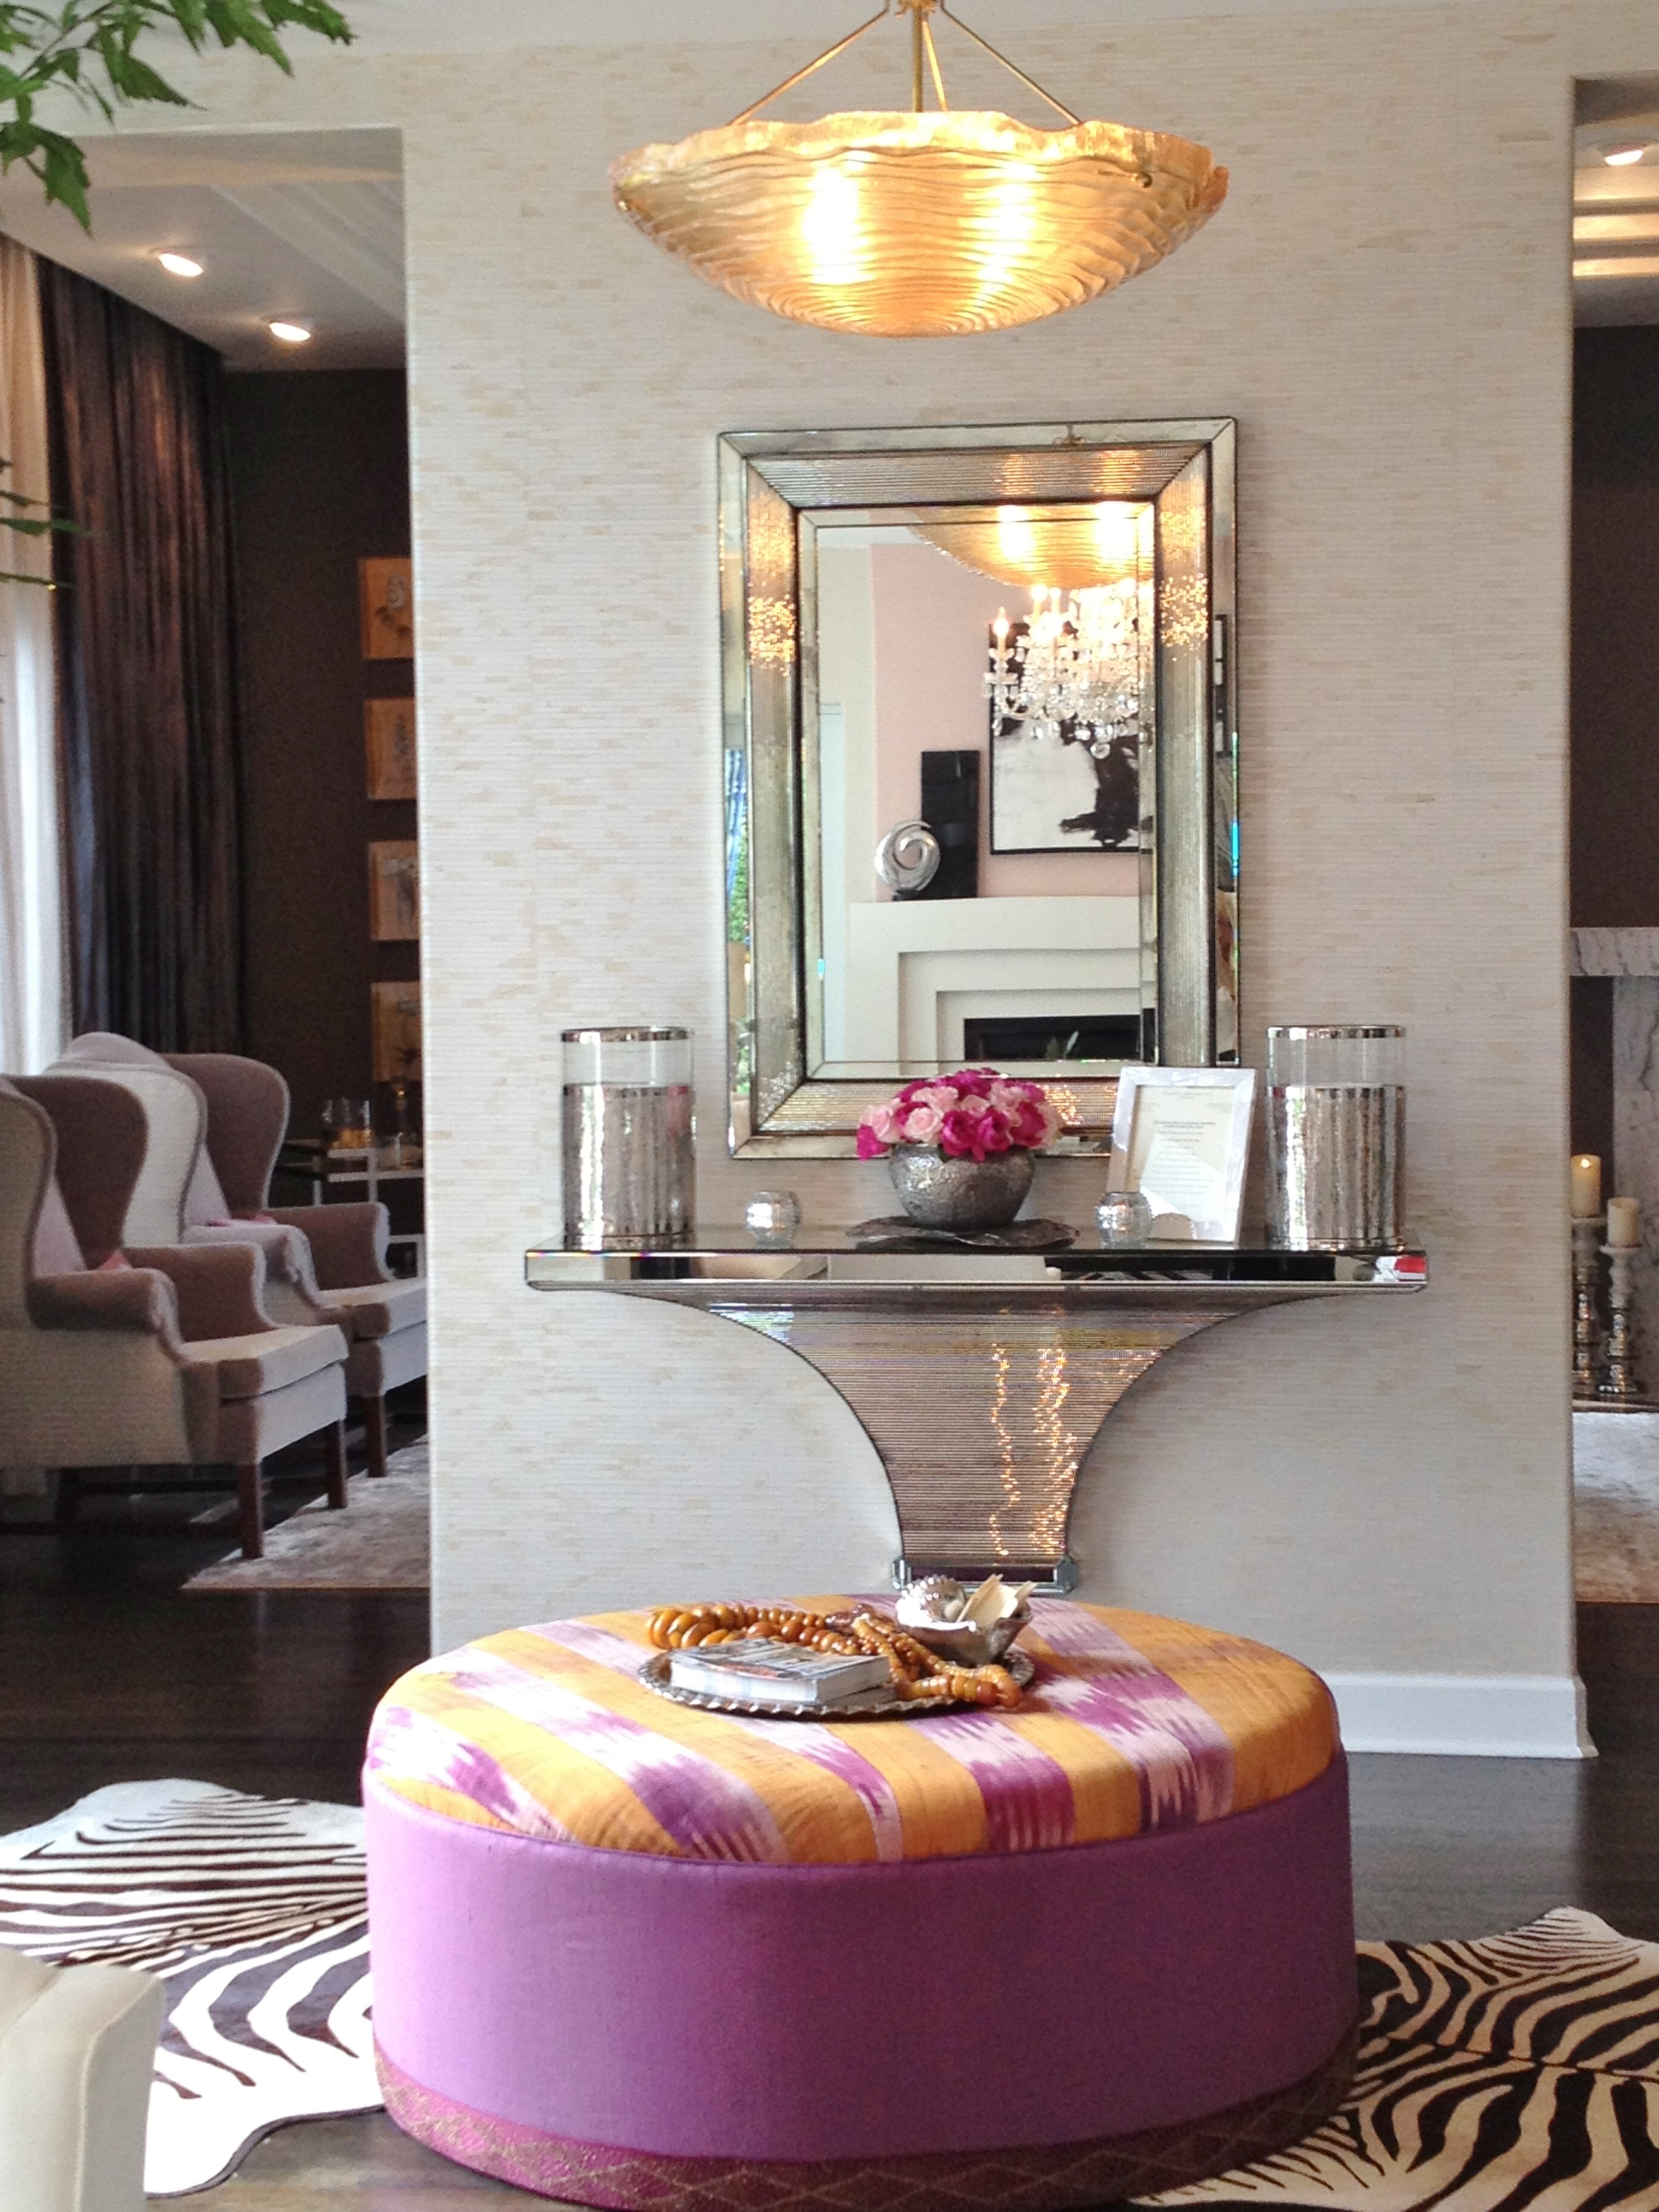 The Living Room Transformed By Jack Fhillips Was Lovely With It S Soft Color Palette Of Blush Gray Black And Whites Which He Explained Was Influenced By